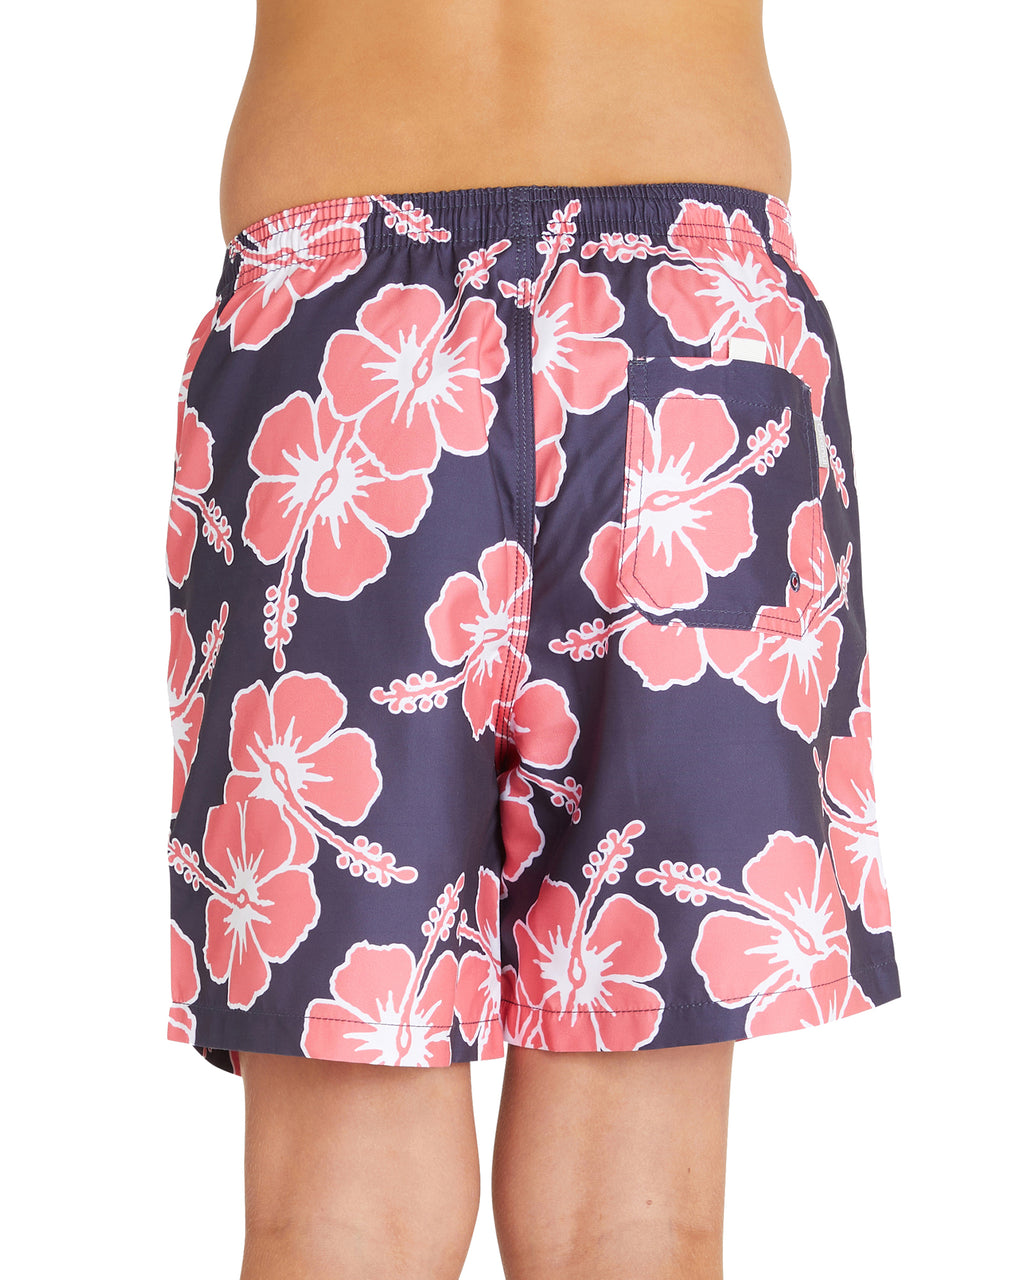 Kids Swim Short - Way Back When - Charcoal